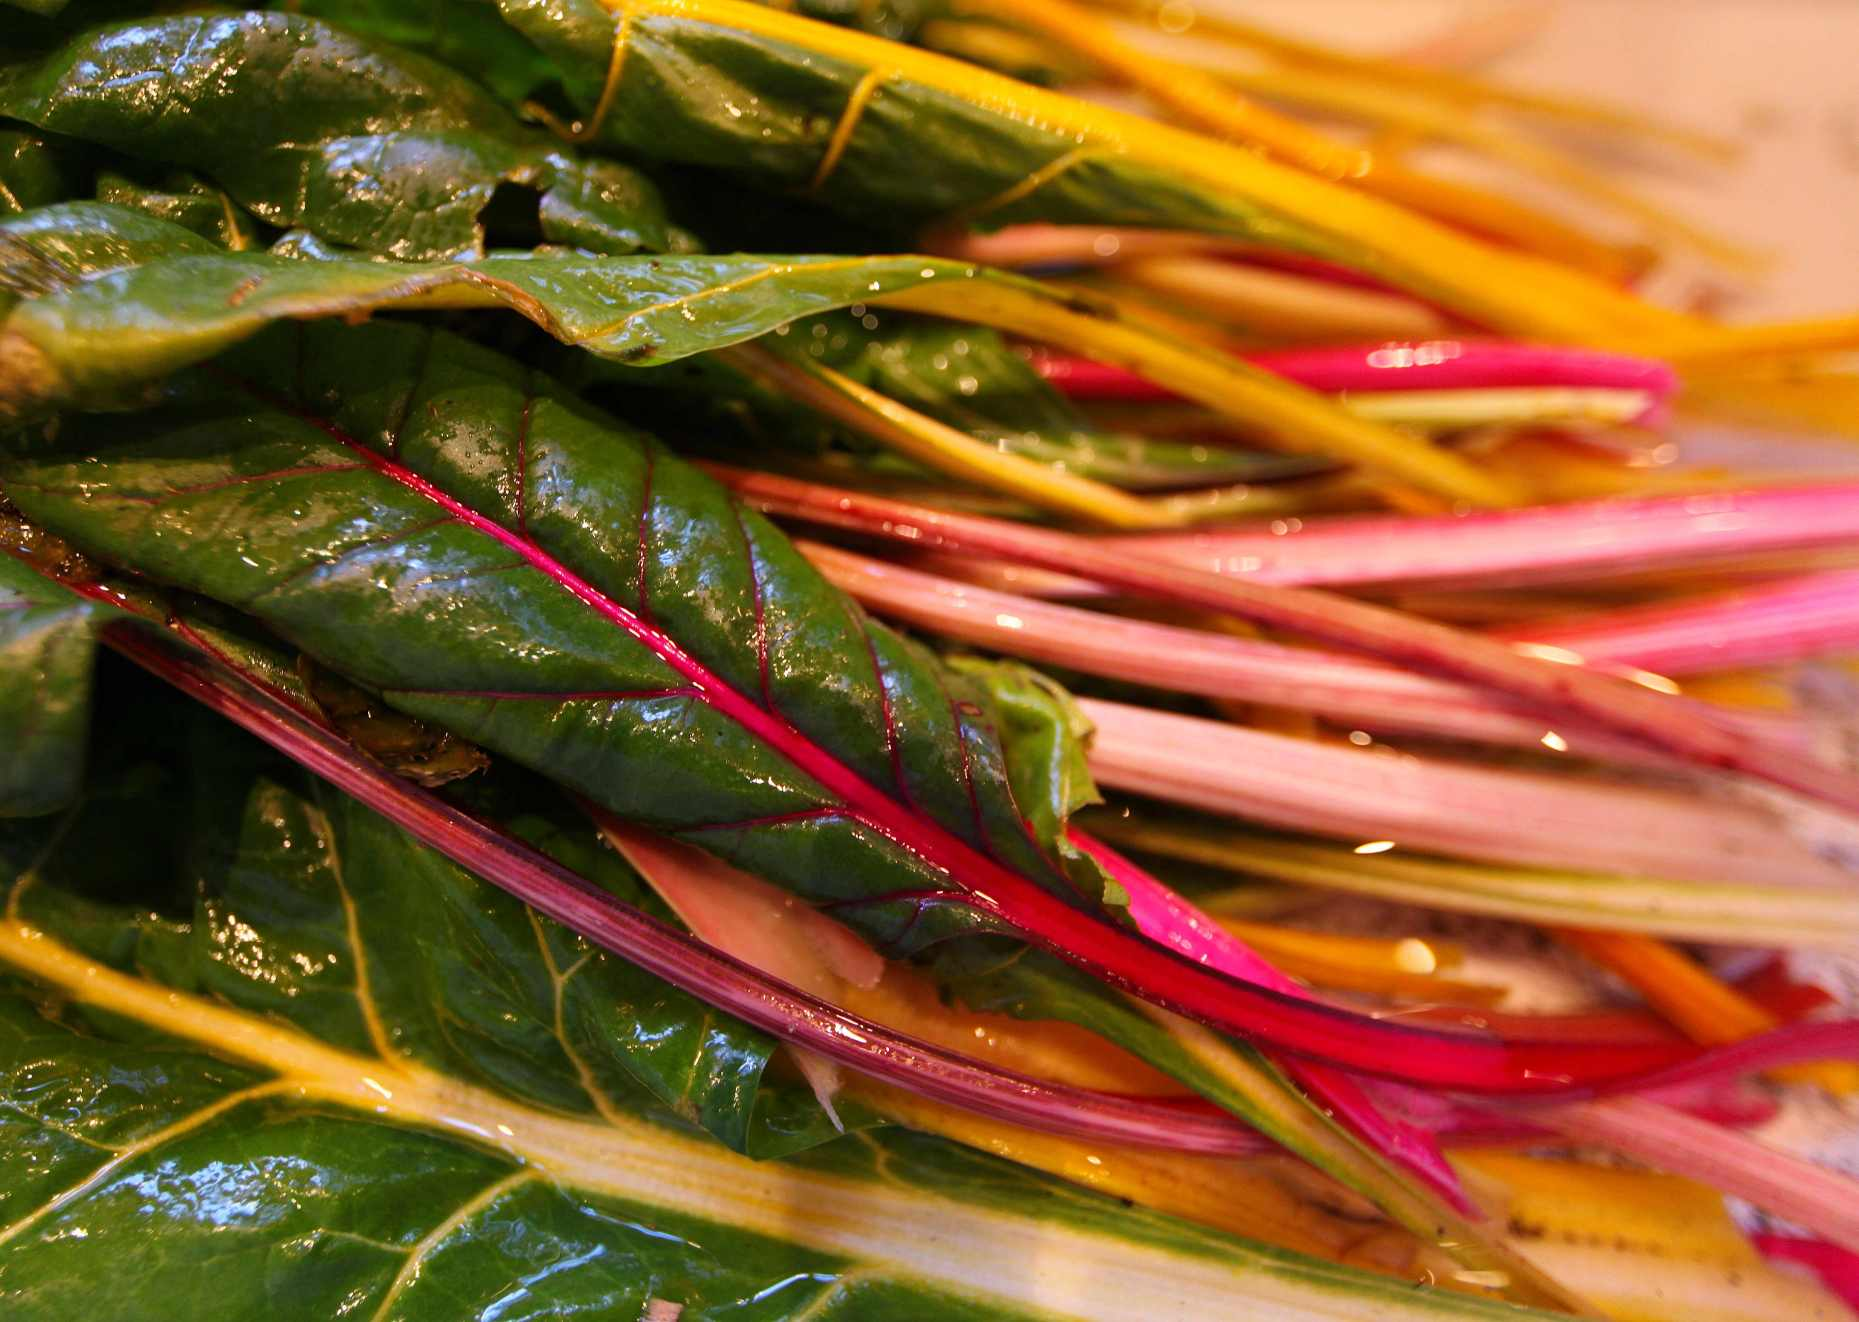 Swiss Chard From the Winter Garden Being Washed in the Farm Sink. Photo © Liesl Clark